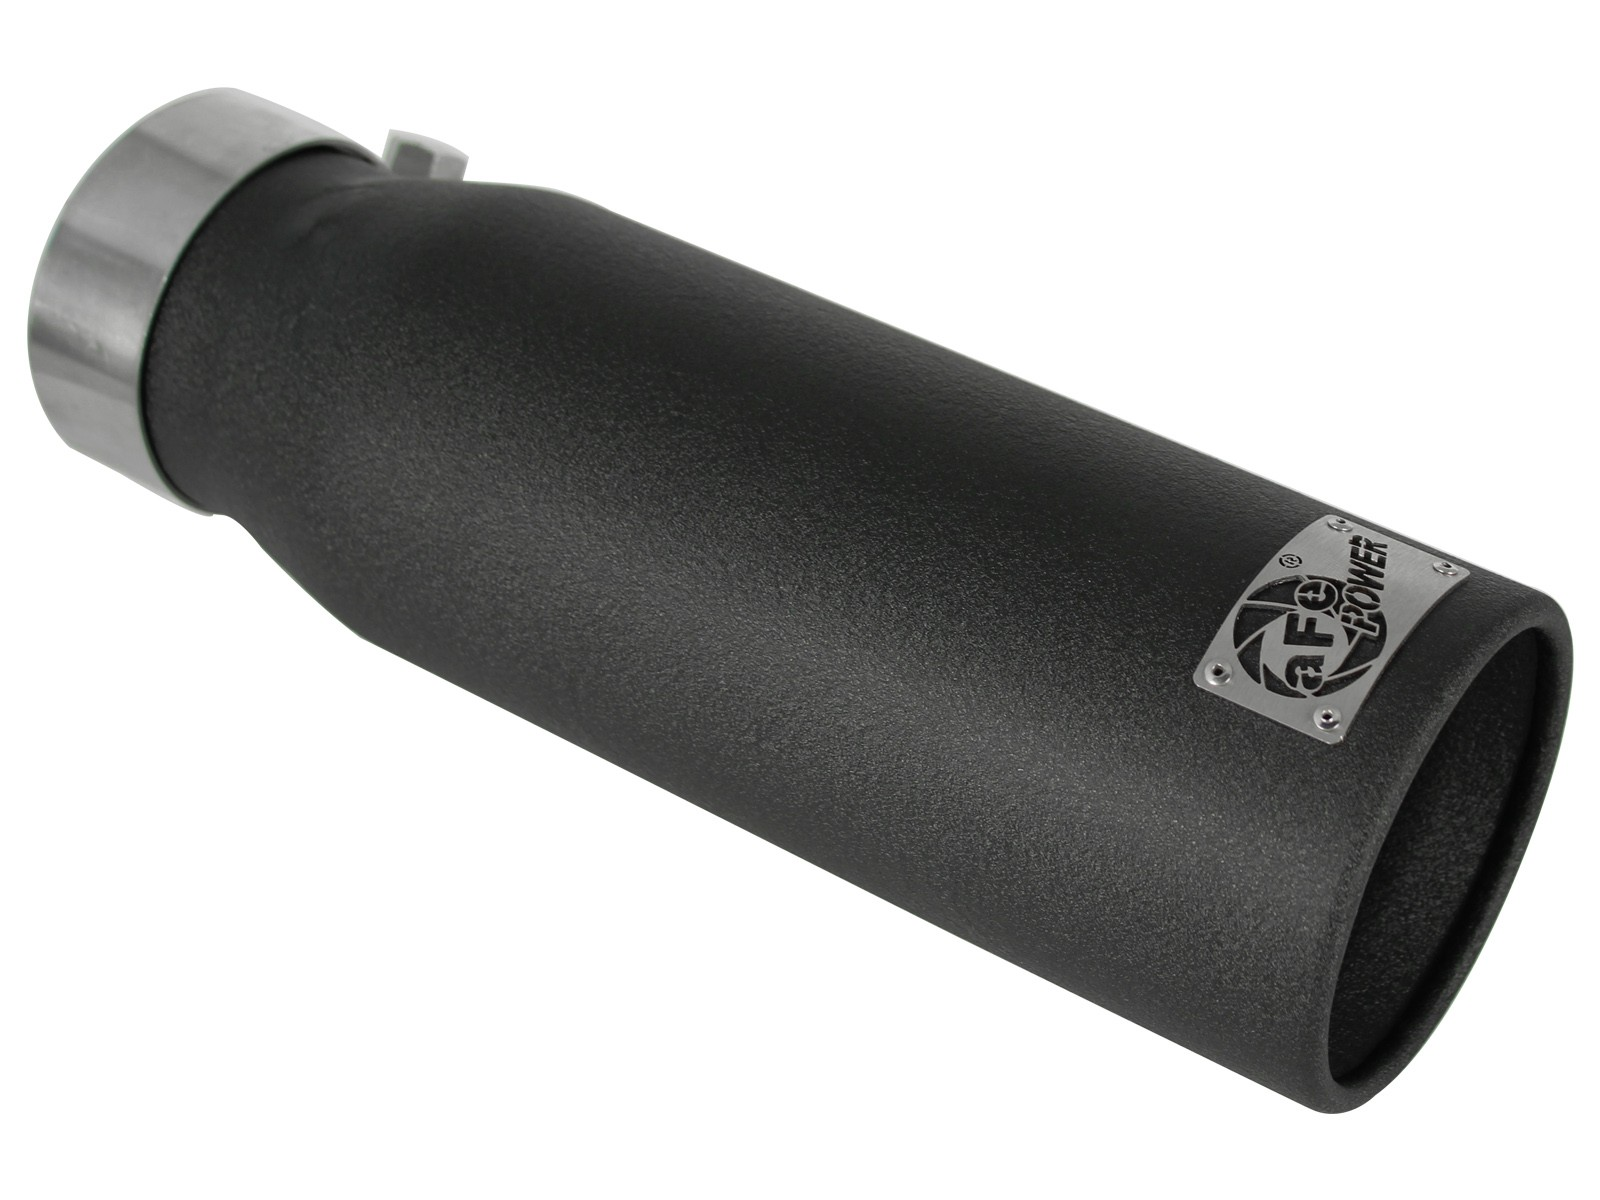 """aFe POWER 49-92043-B MACH Force-Xp 3"""" 409 Stainless Steel Exhaust Tip"""